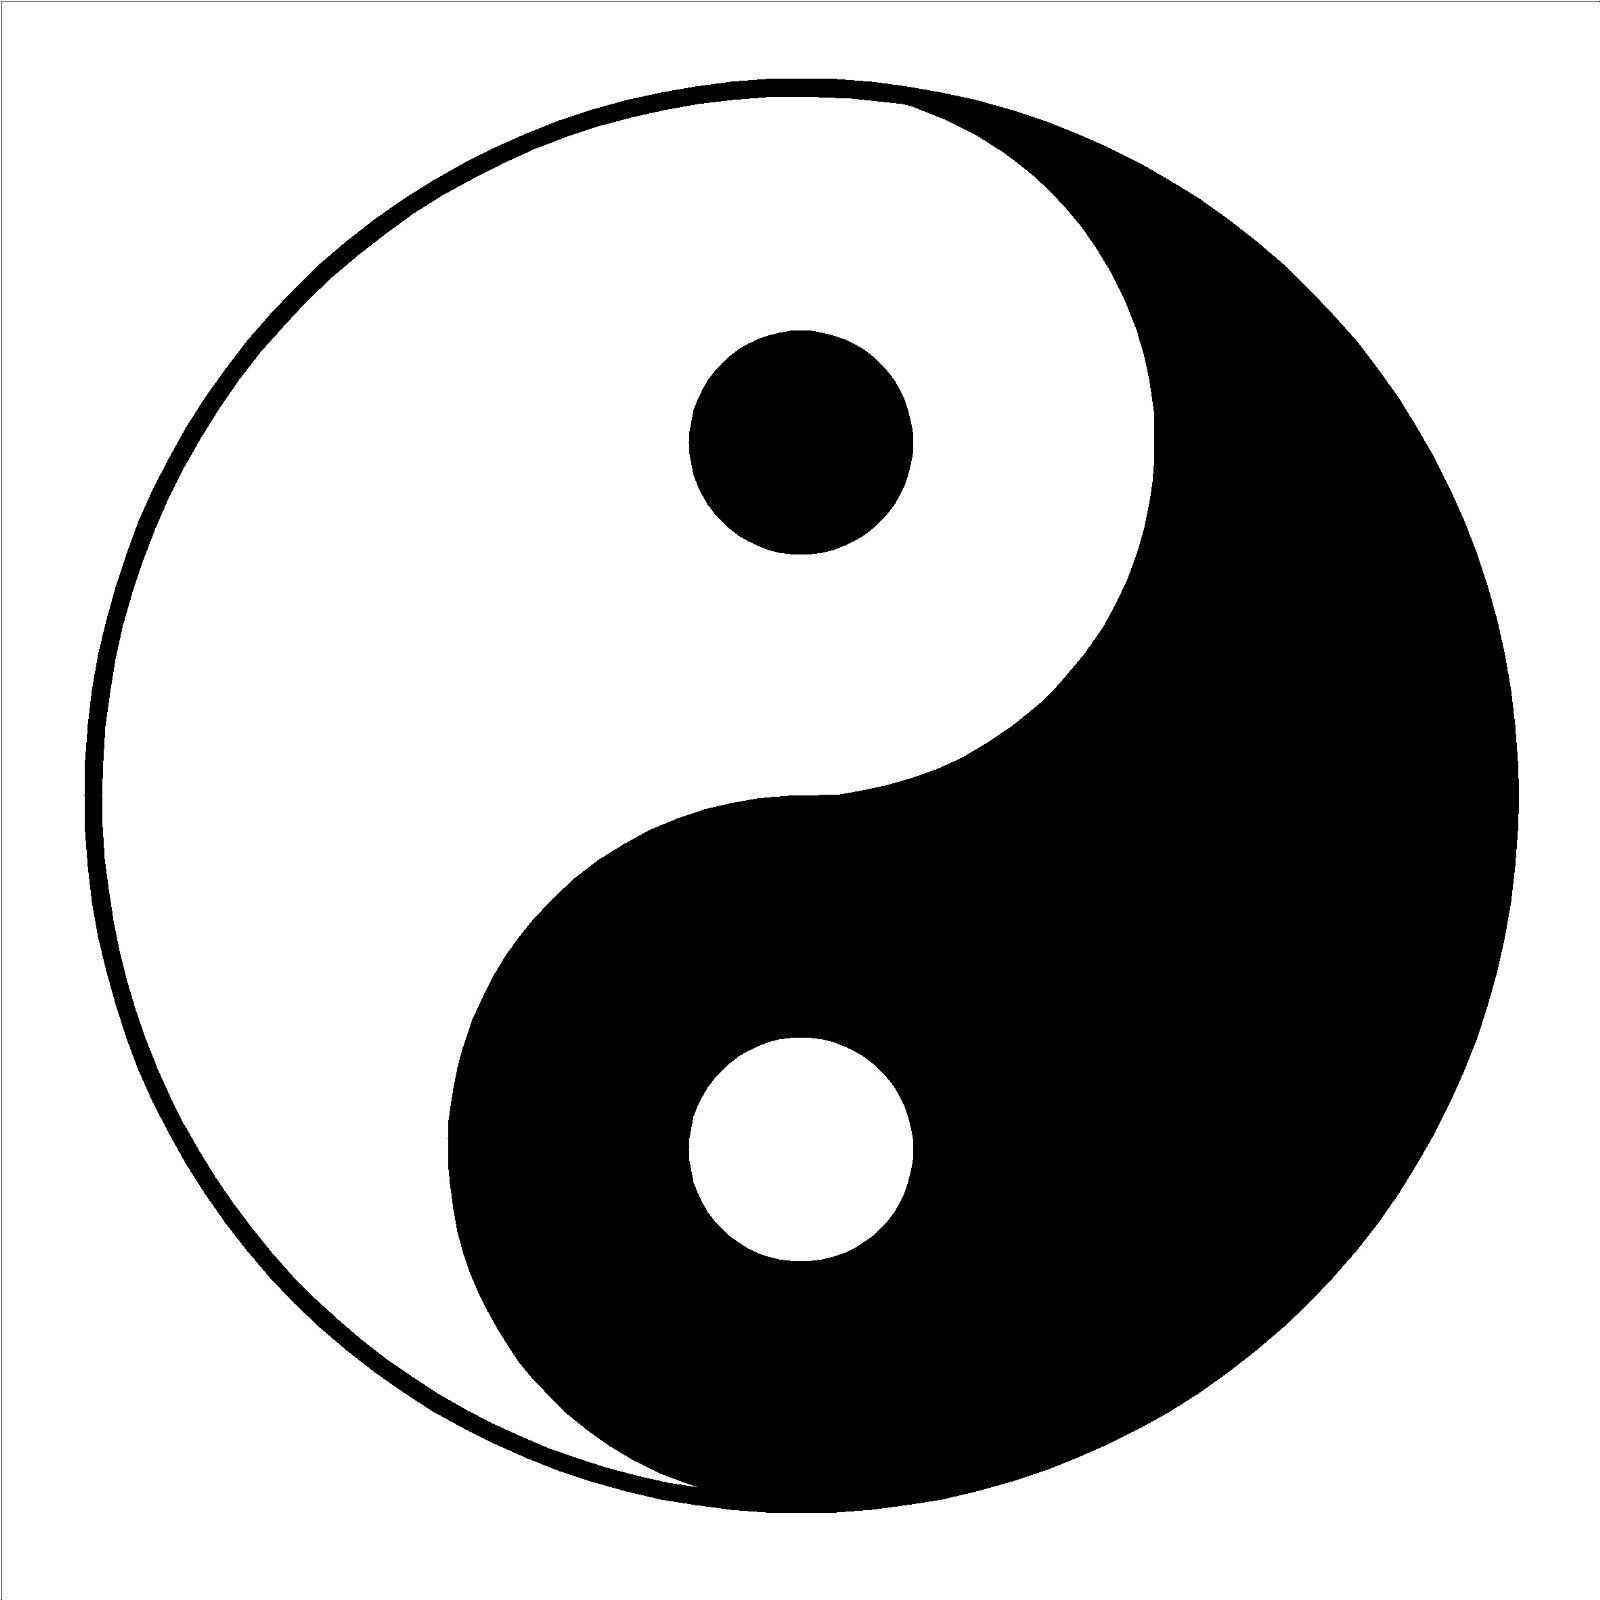 D189 YIN YANG SYMBOL YING-YANG WALL ART ROOM STICKER VINYL DECAL Vinyl Movable Wall Sticker for Living Room Home Decor